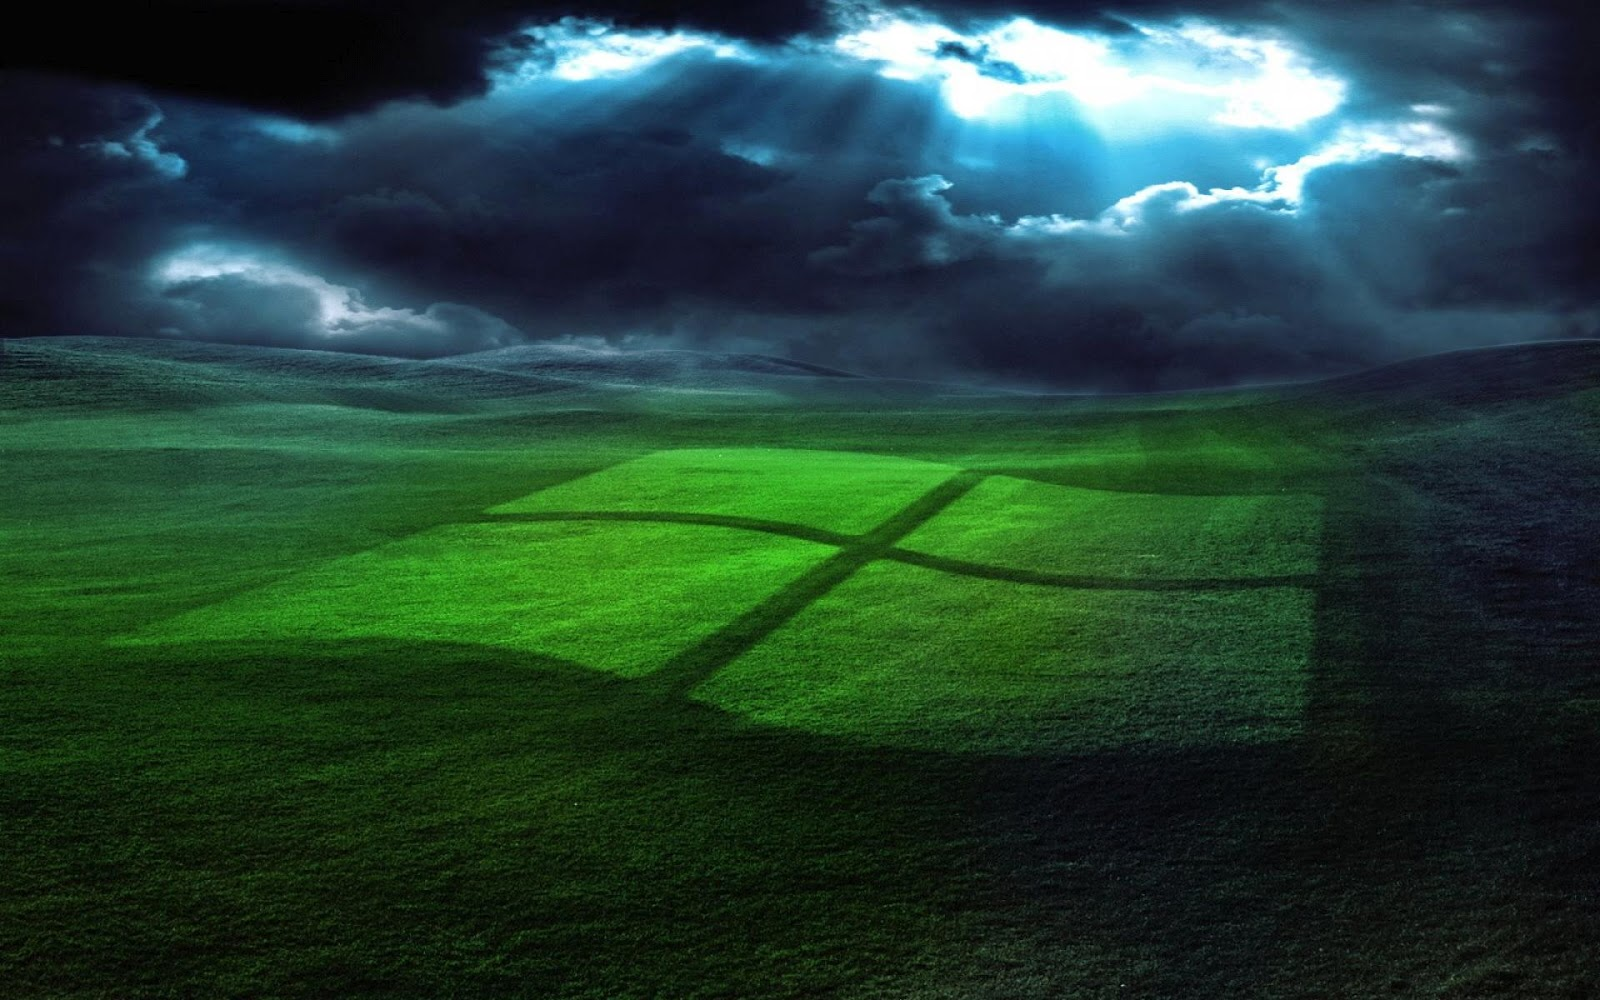 Wallpaper For Windows Xp Wallpaper